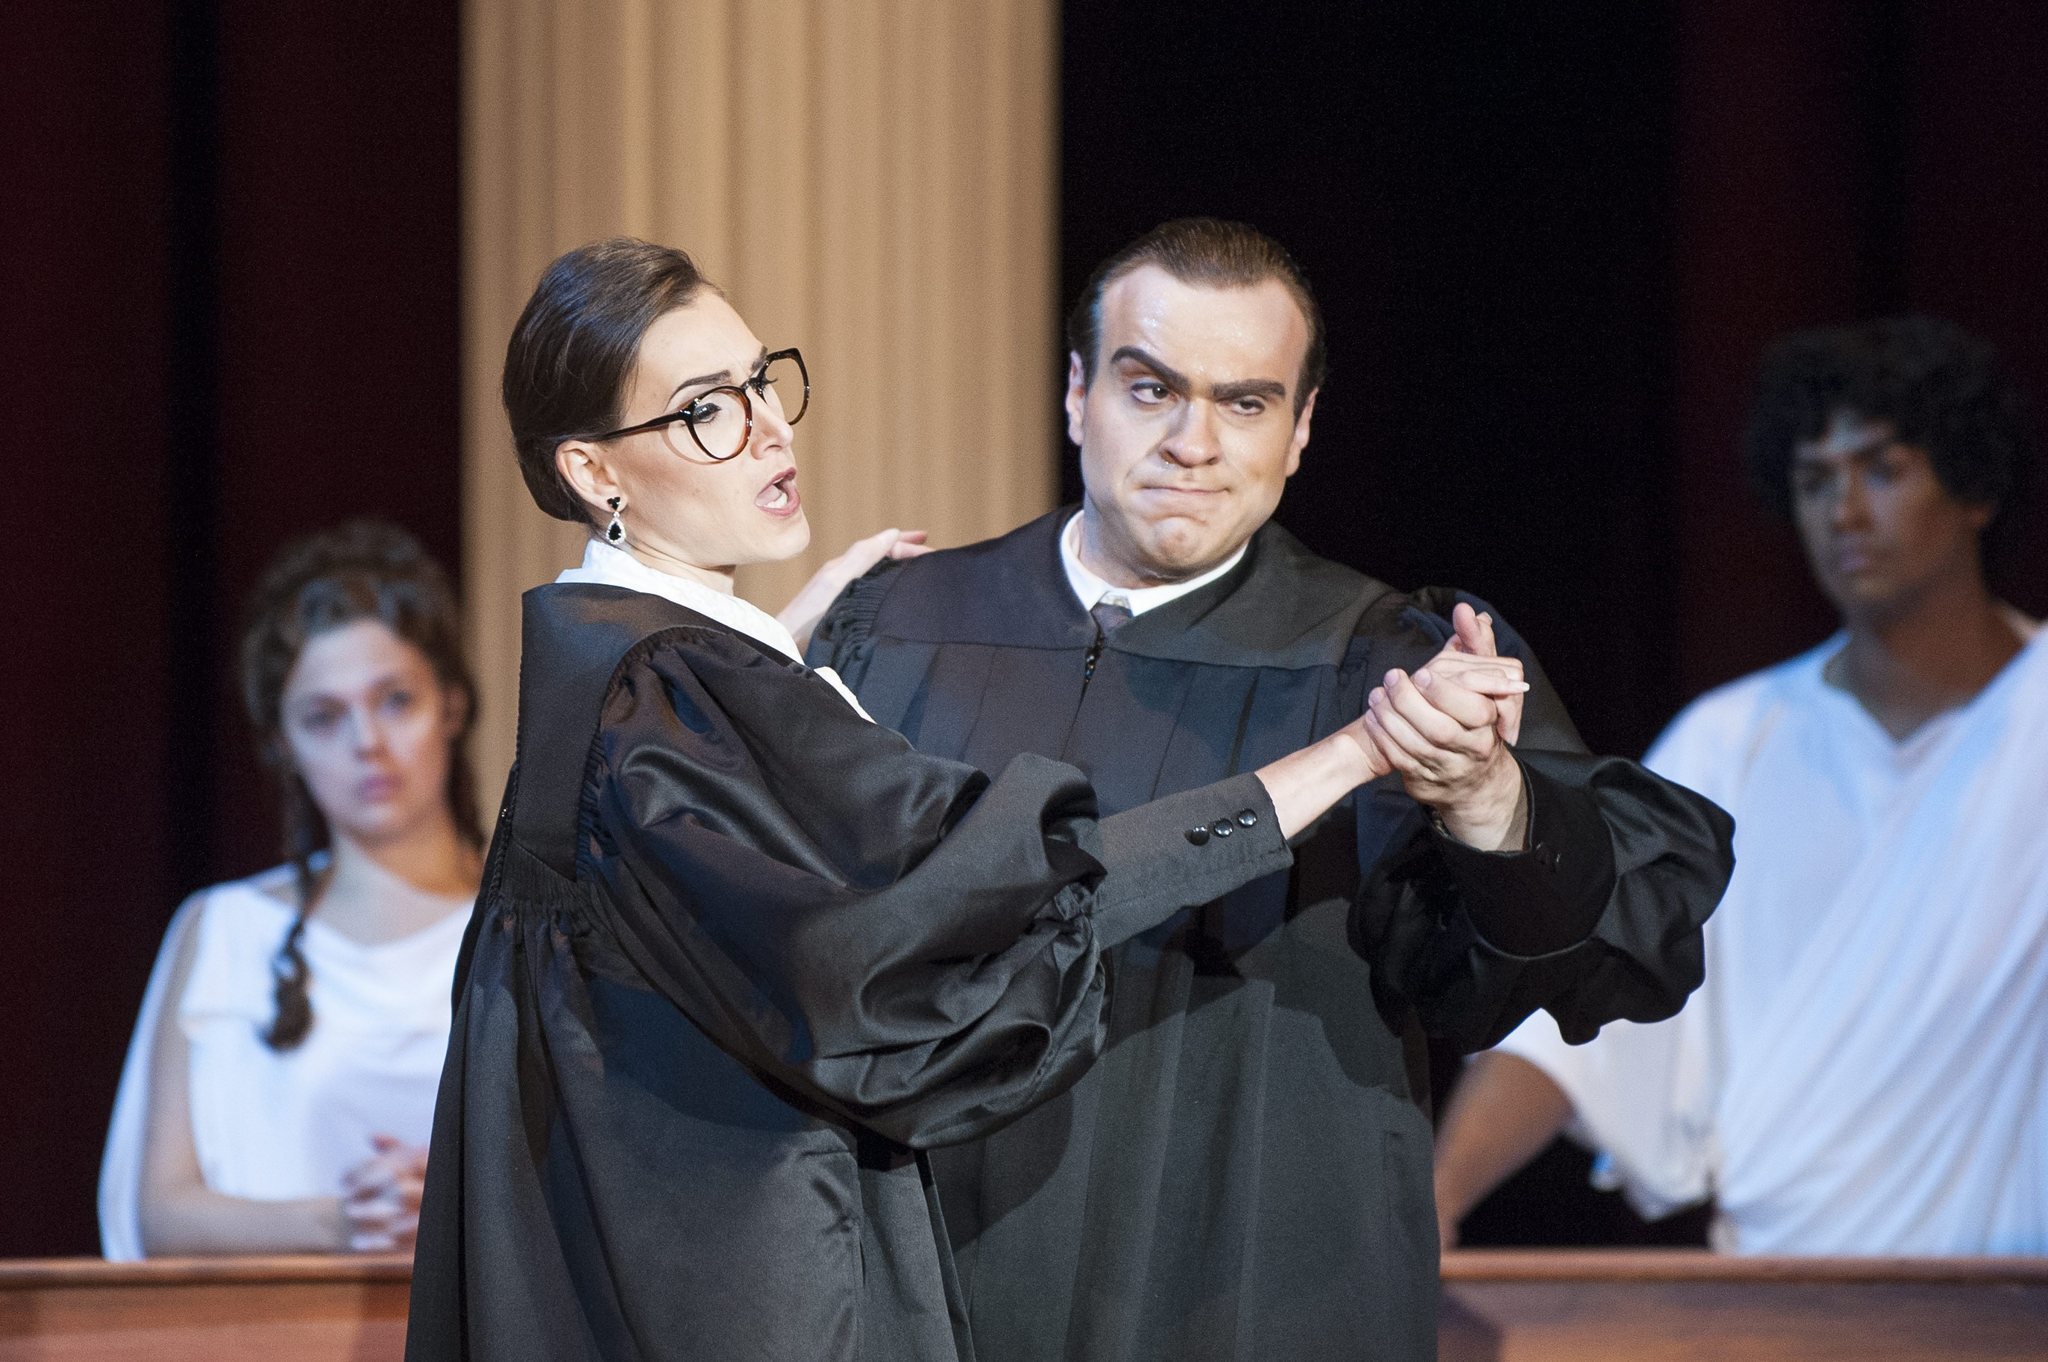 what is unique about scalia and ginsburg relationship